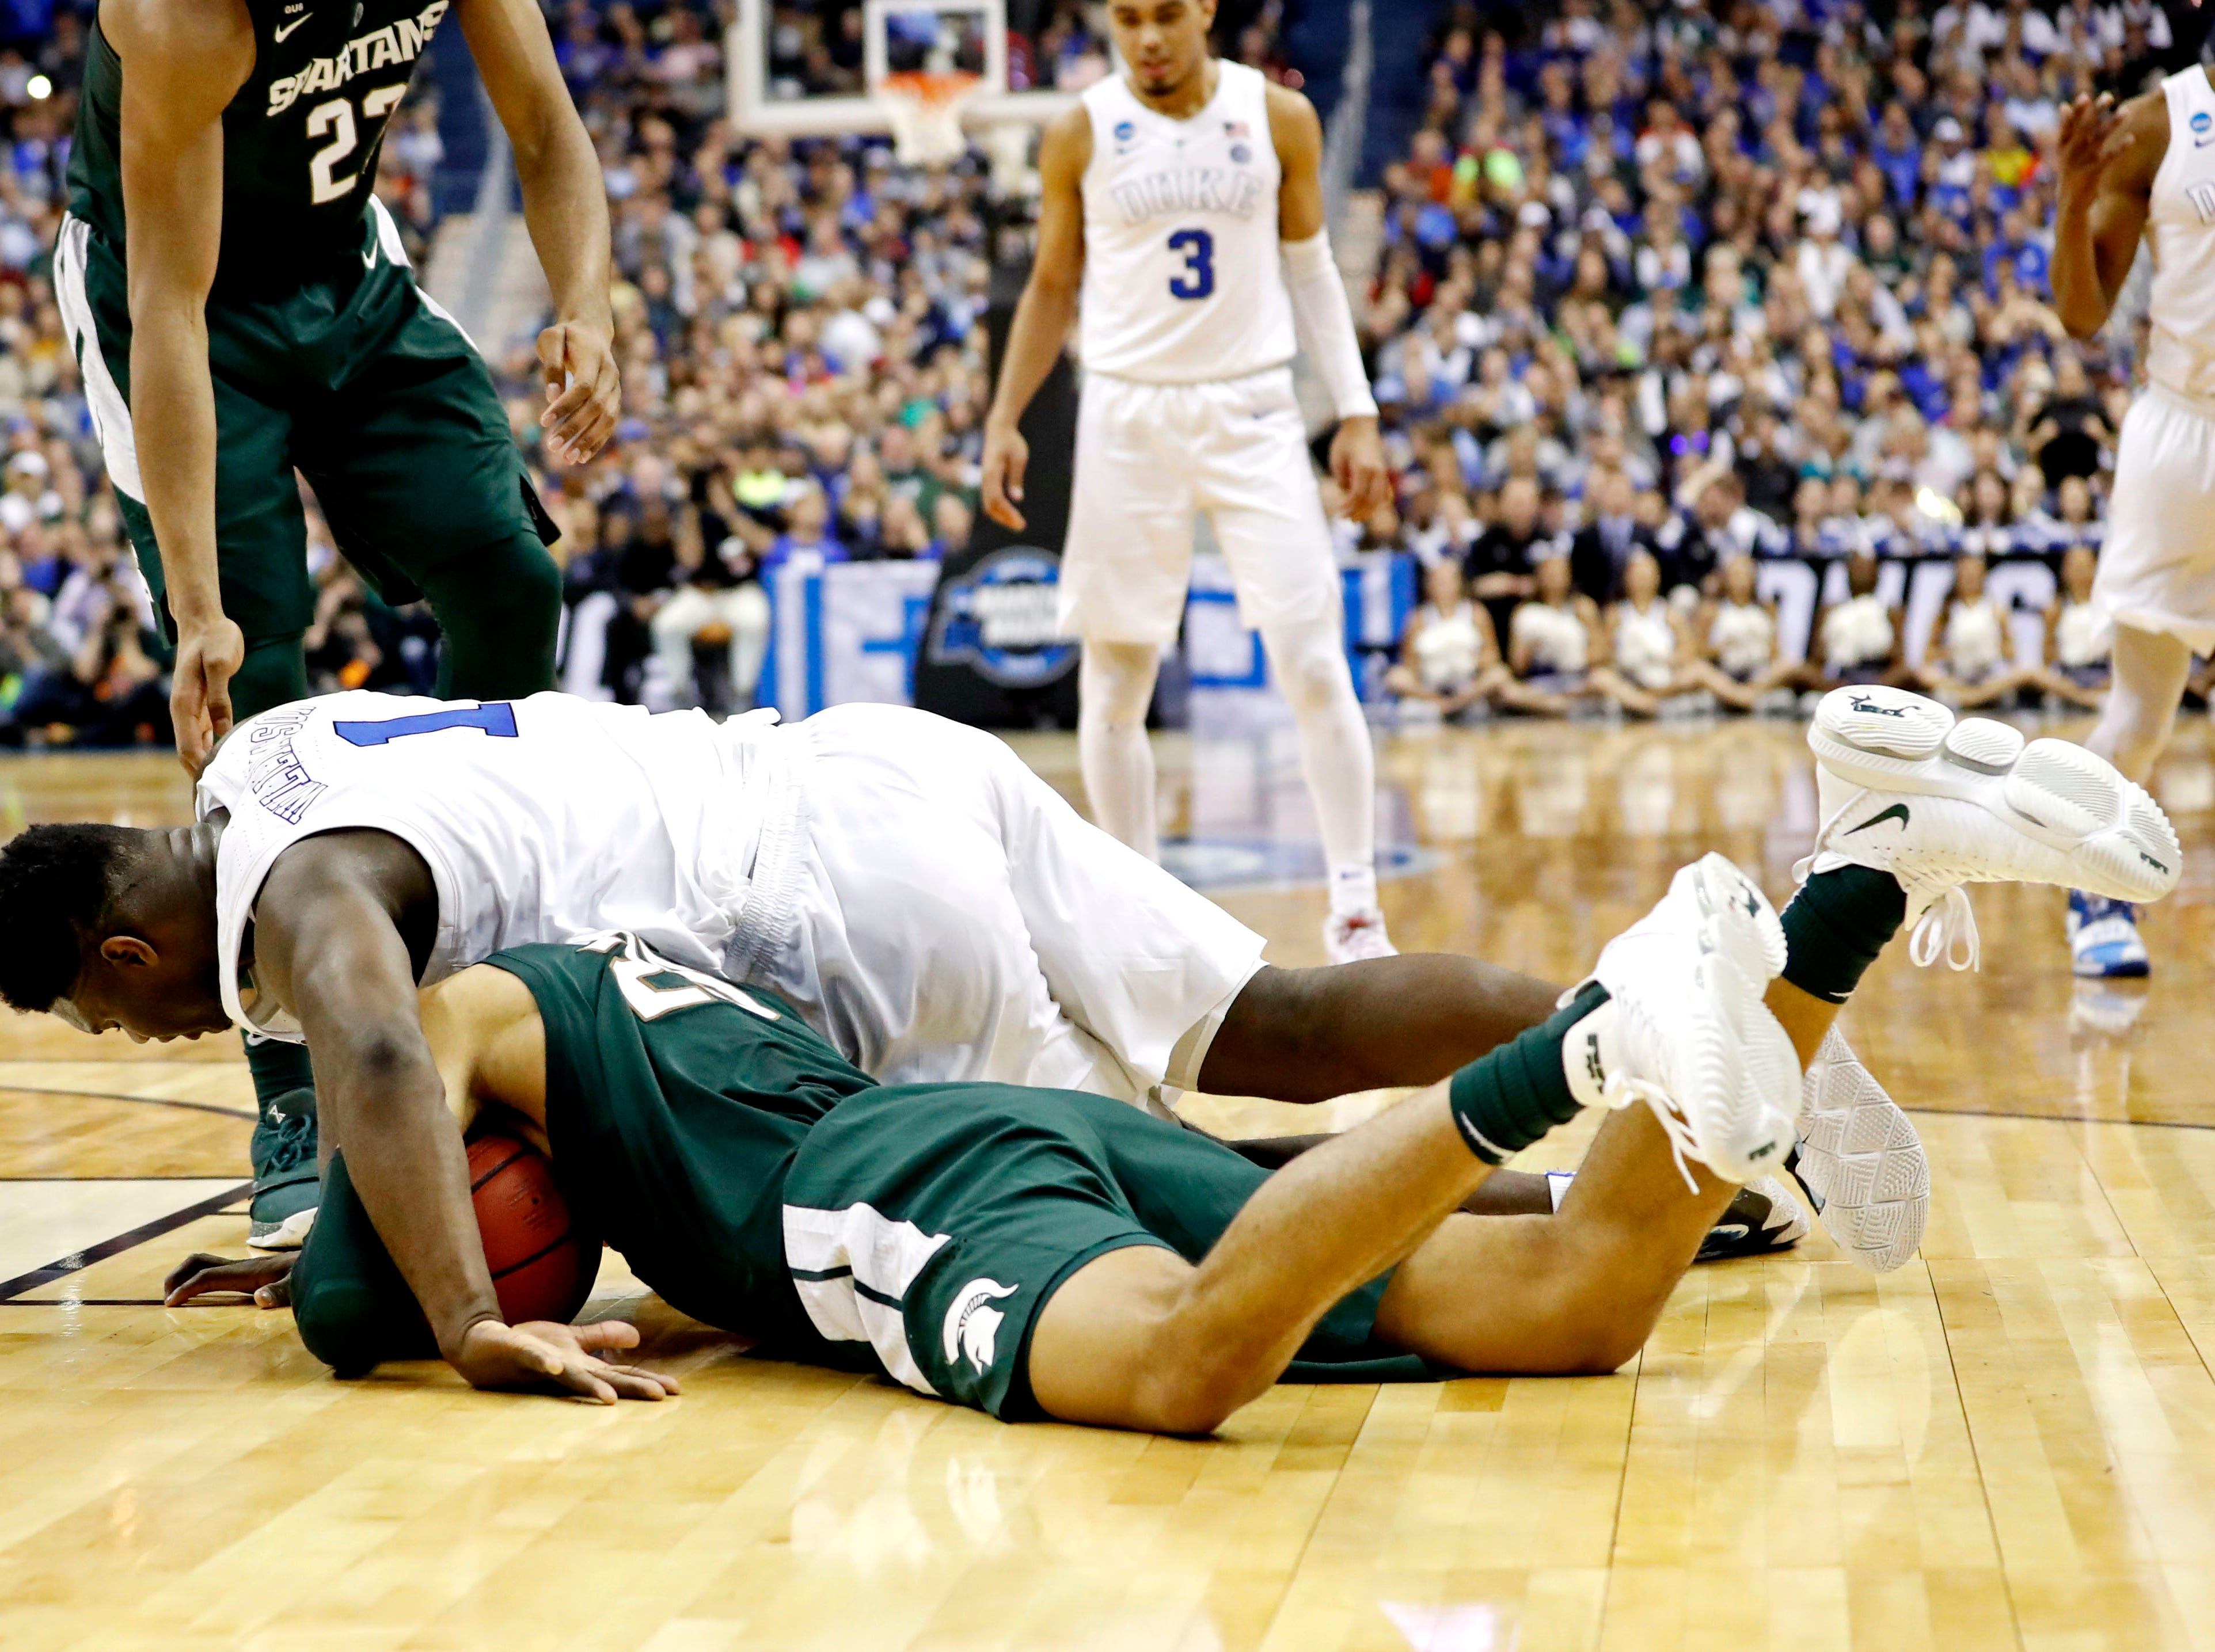 Mar 31, 2019; Washington, DC, USA; Duke Blue Devils forward Zion Williamson (1) and Michigan State Spartans forward Xavier Tillman (23) go for a loose ball during the first half in the championship game of the east regional of the 2019 NCAA Tournament at Capital One Arena. Mandatory Credit: Geoff Burke-USA TODAY Sports